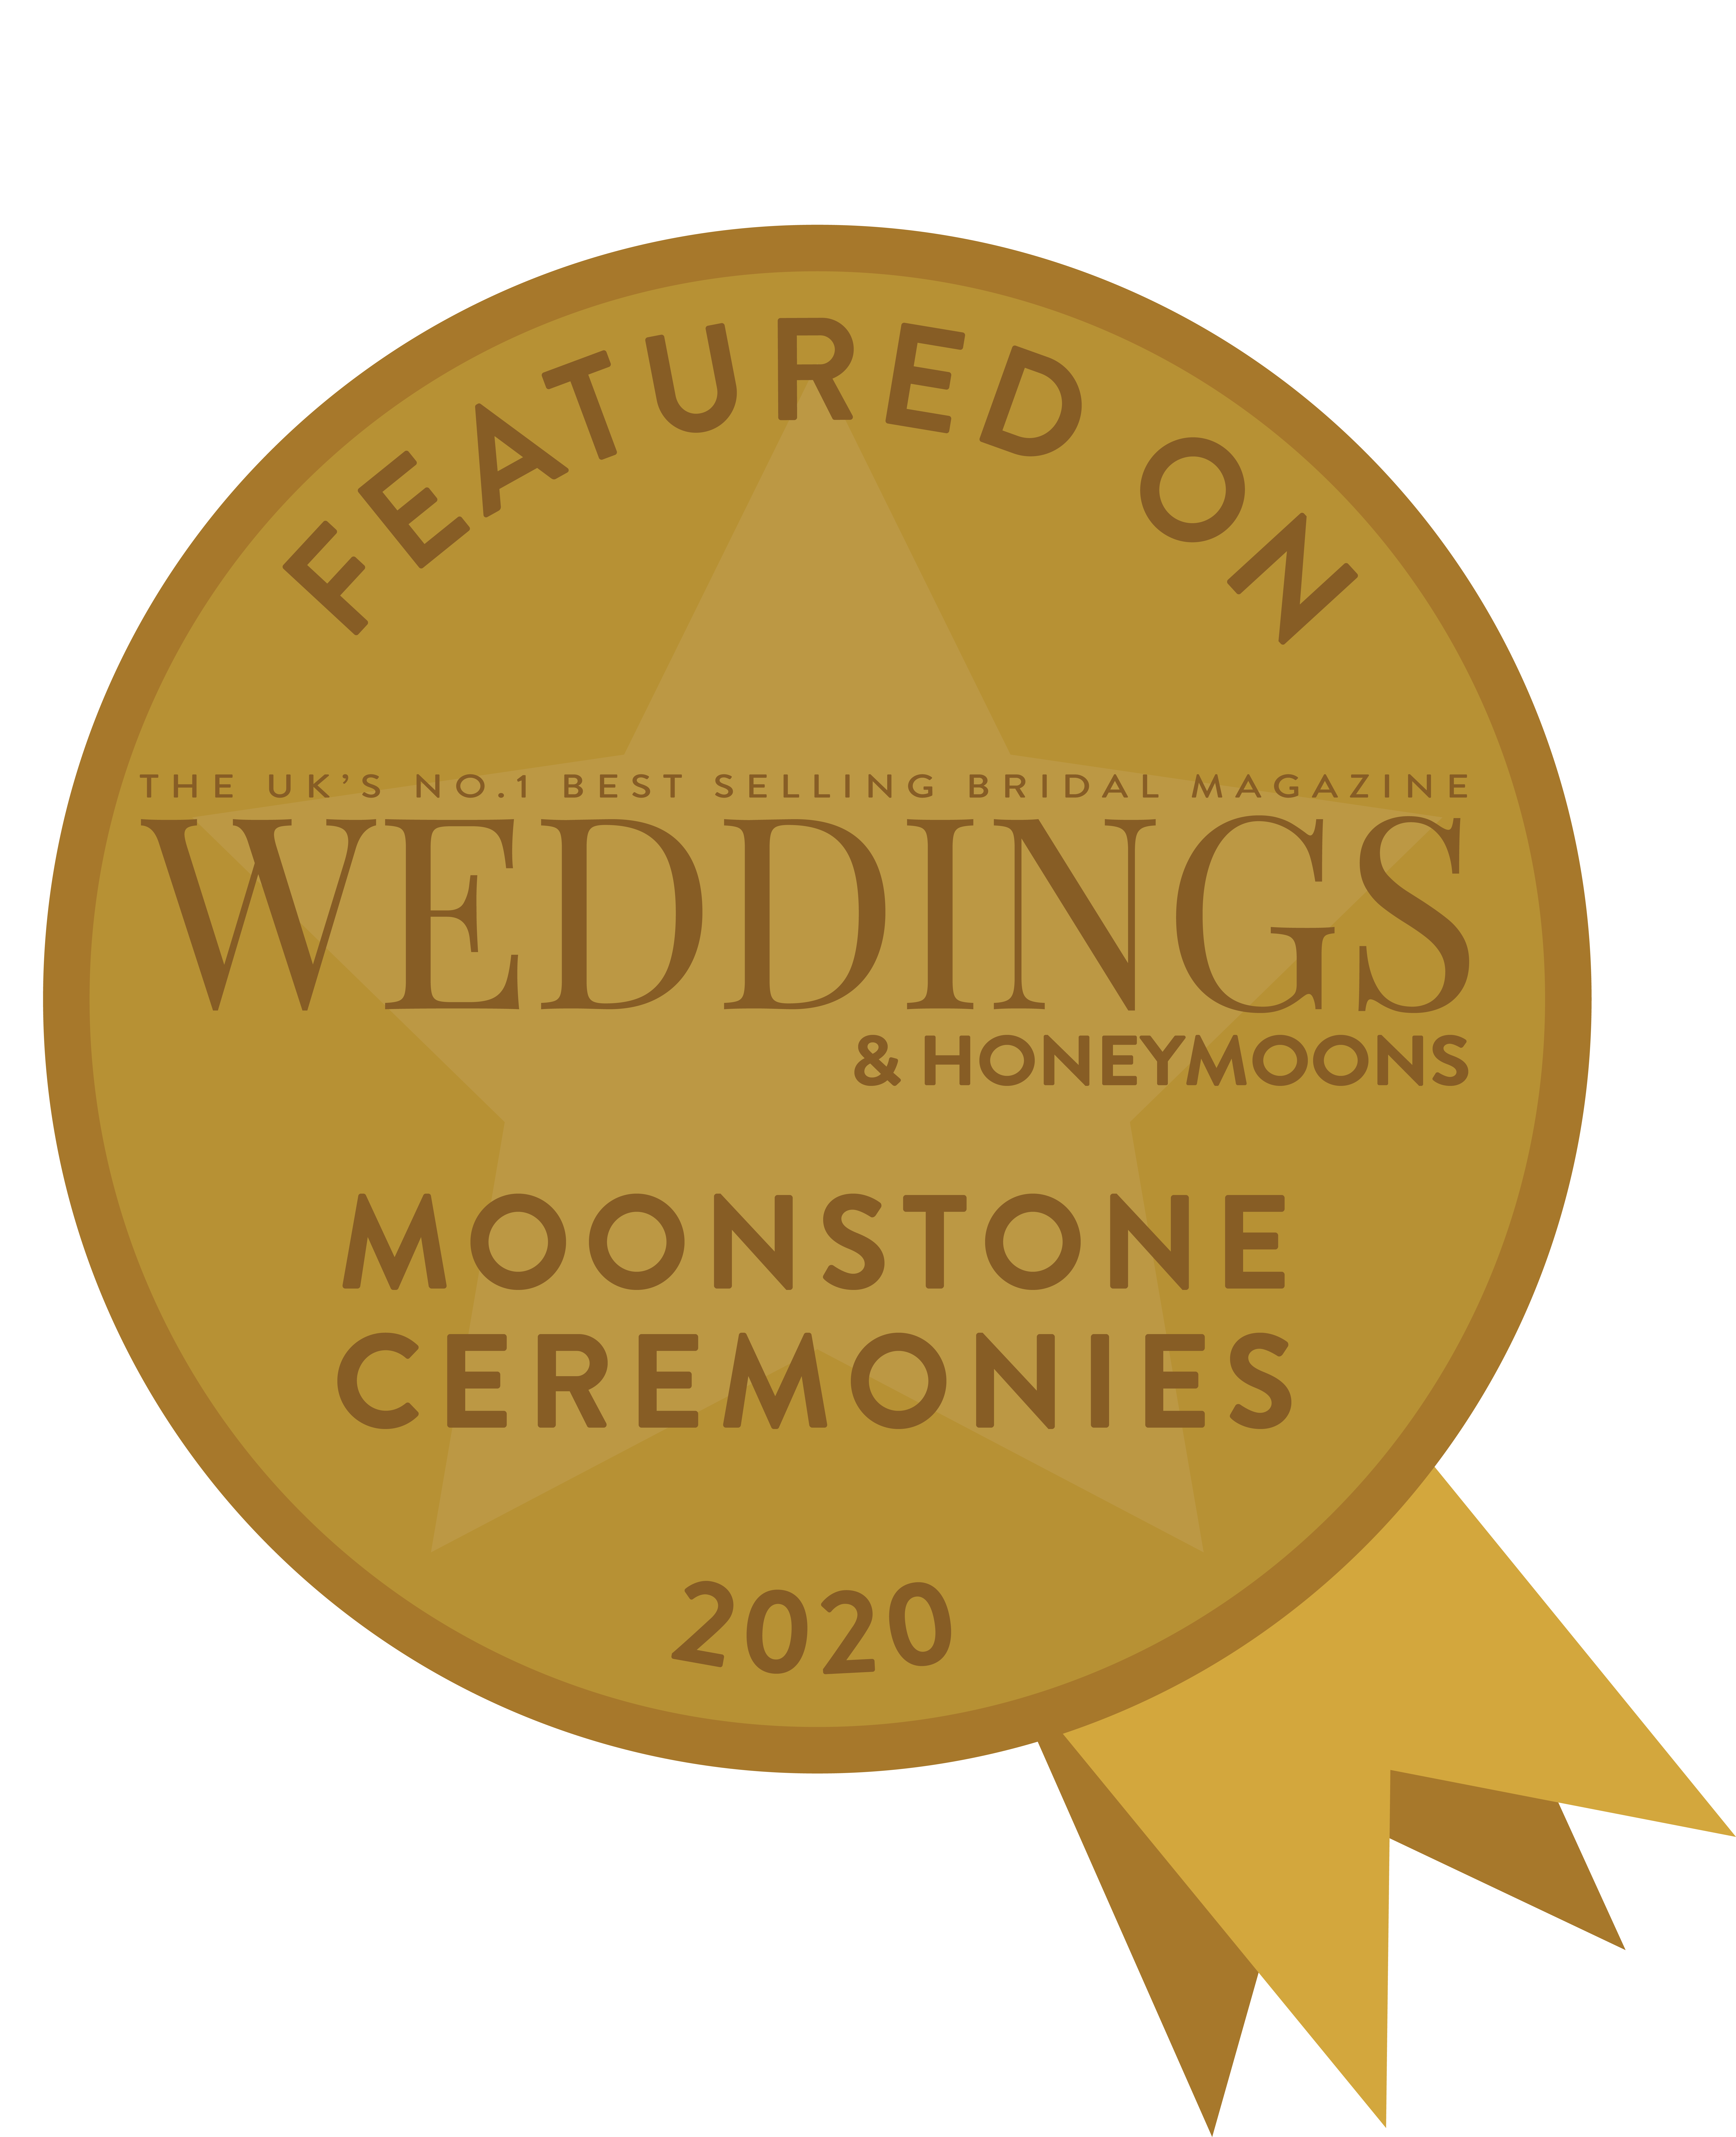 Featured on Weddings and honeymoons